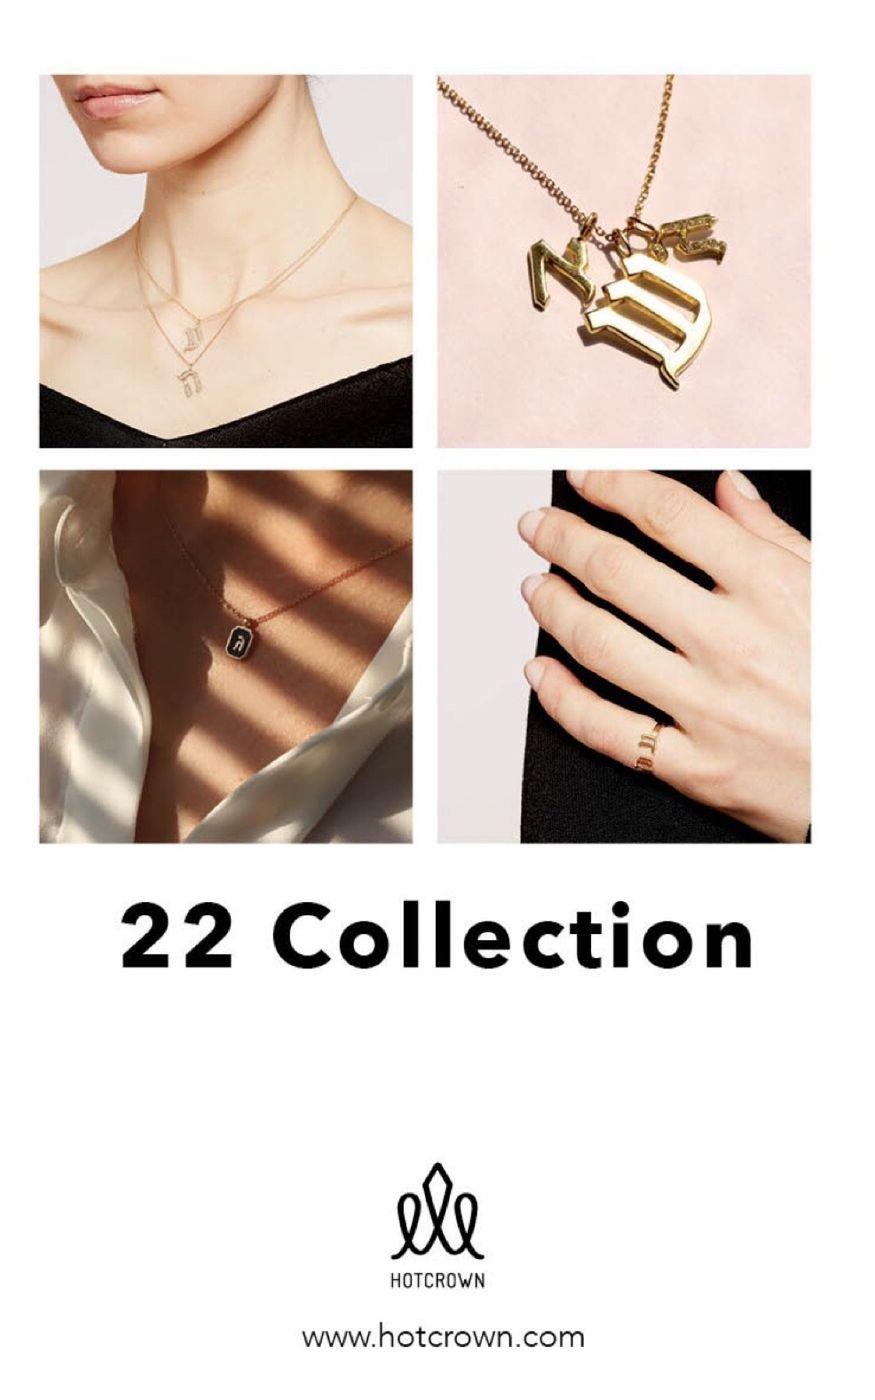 HOT CROWN - The 22 Collection